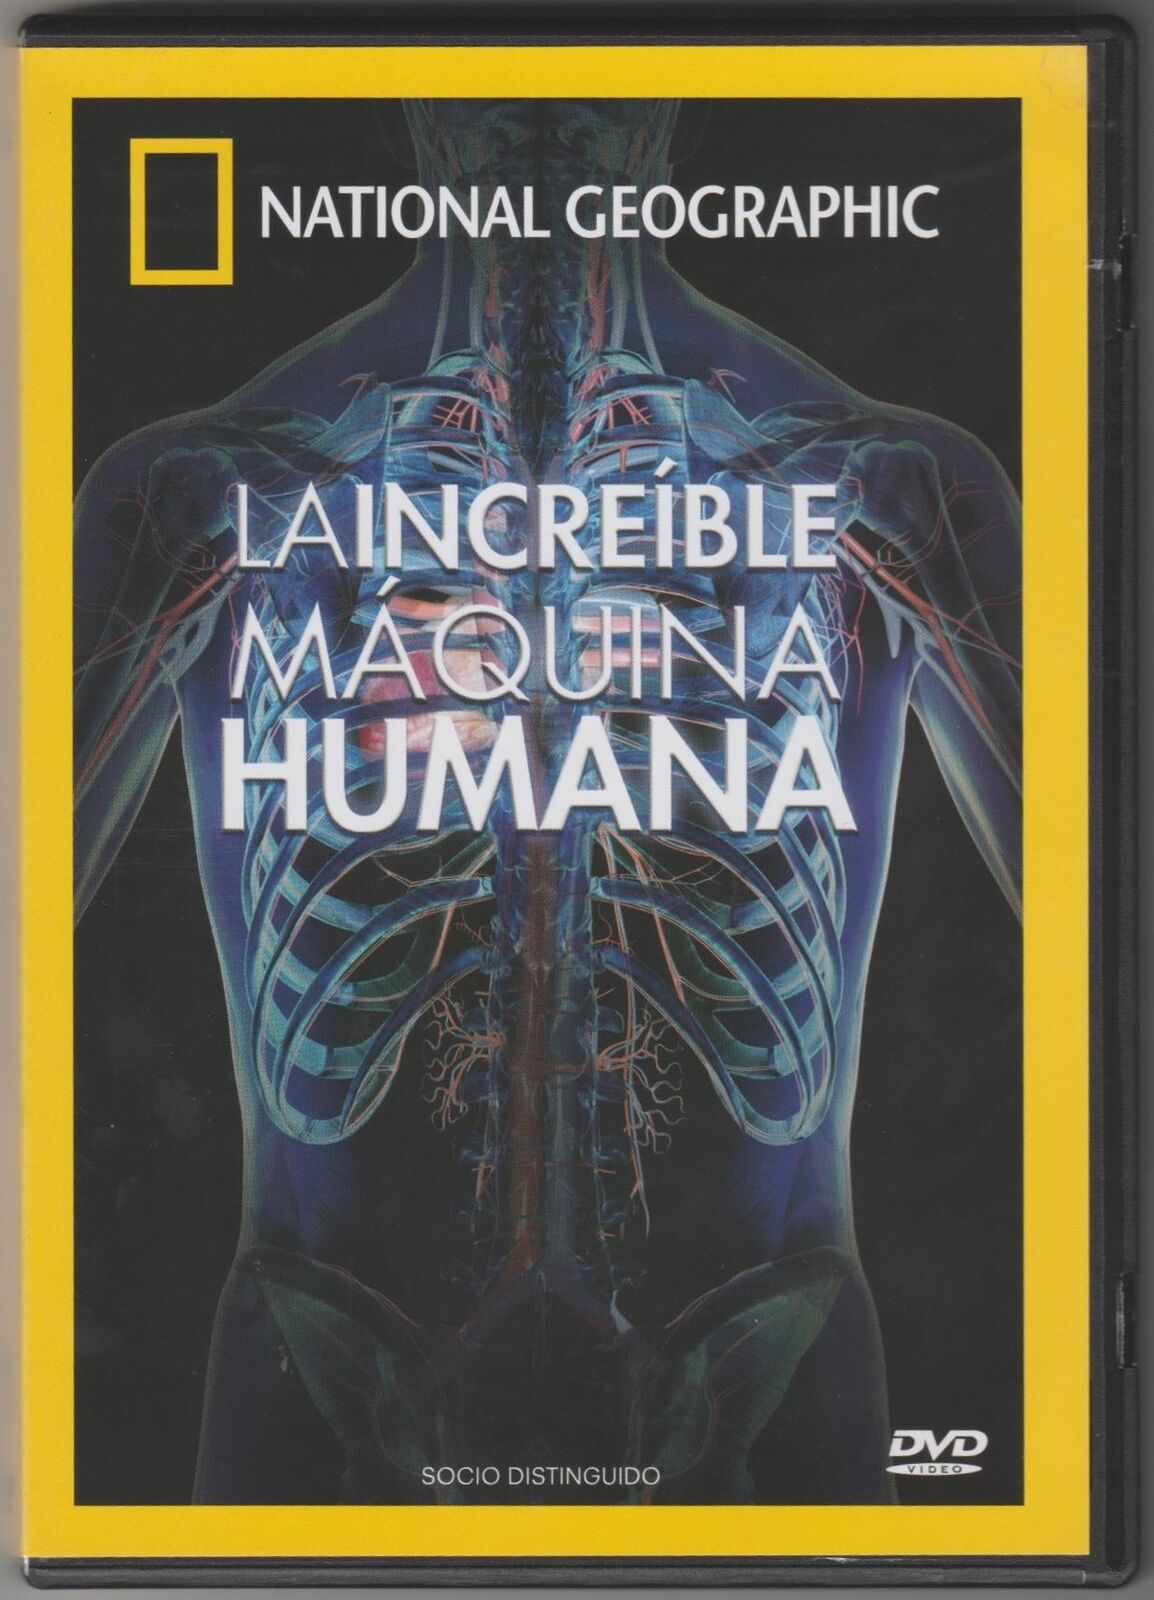 La Increible Maquina Humana Dvd Disc Documentary National Geographic